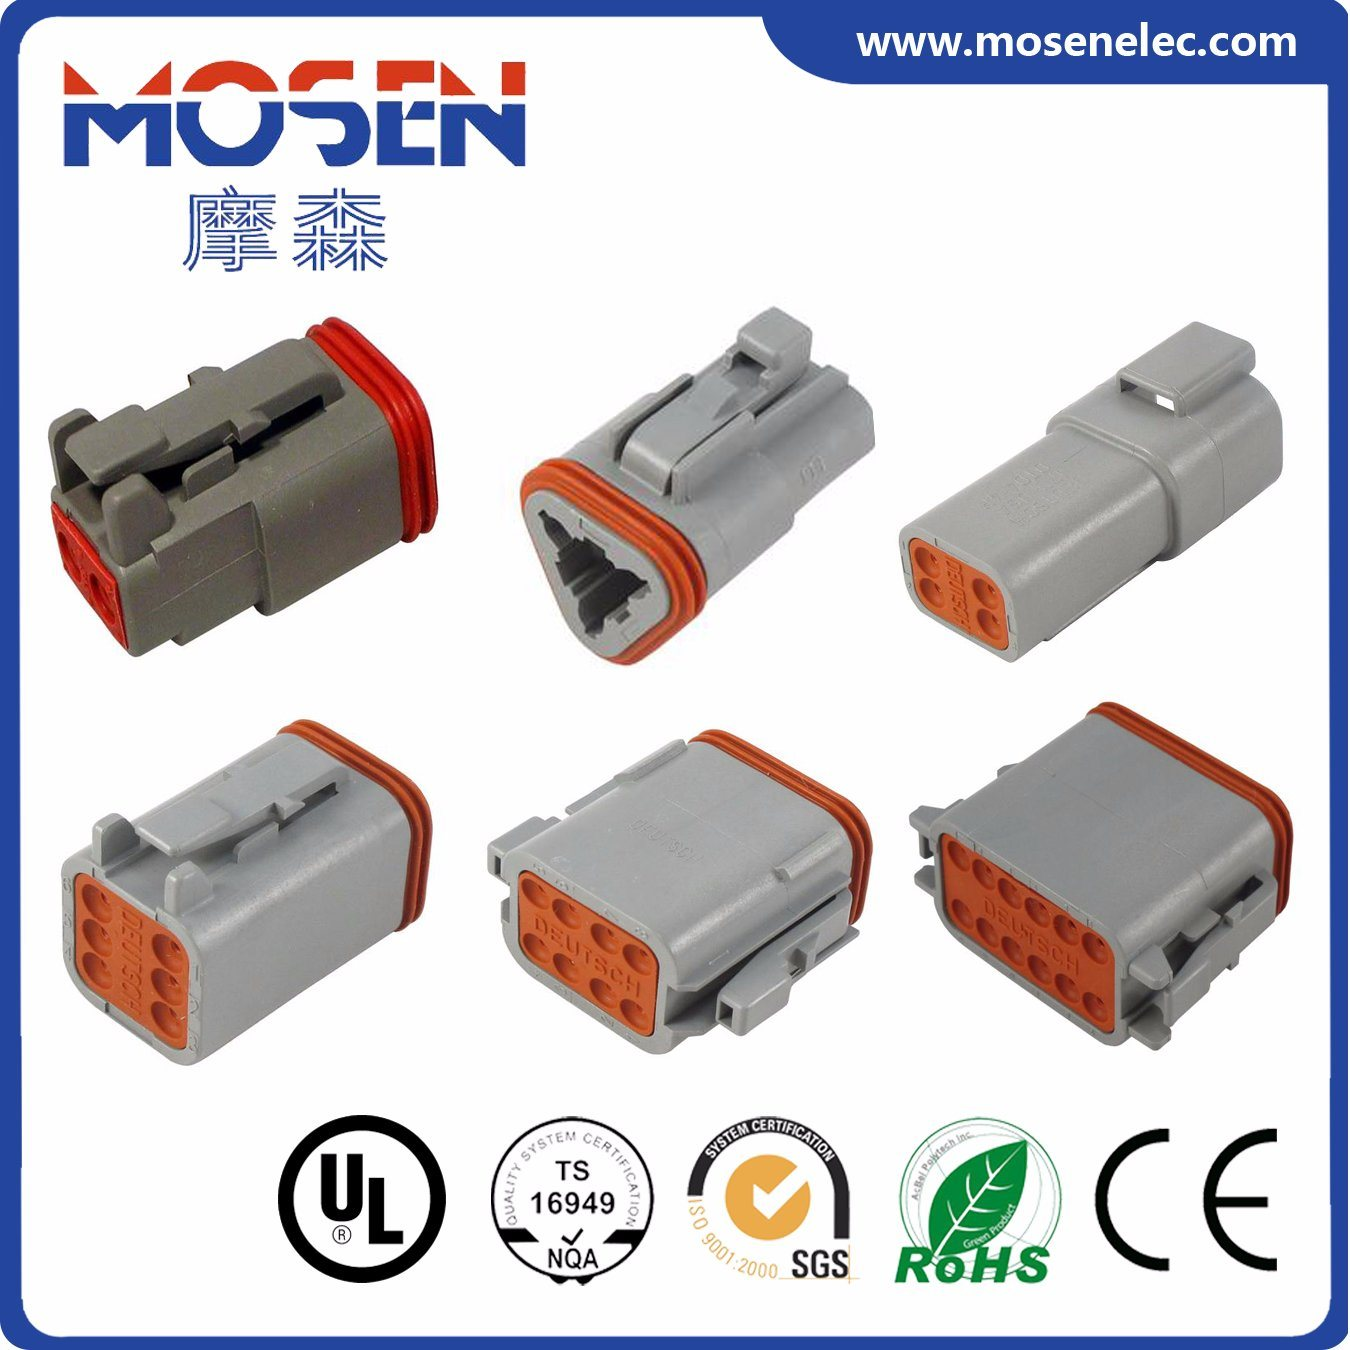 hight resolution of china deutsch auto wire connector electrical connector dt06 2s dt06 3s dt06 4s dt06 6s dt06 8s dt06 12s cwhao7a wiring harness for car with approvals